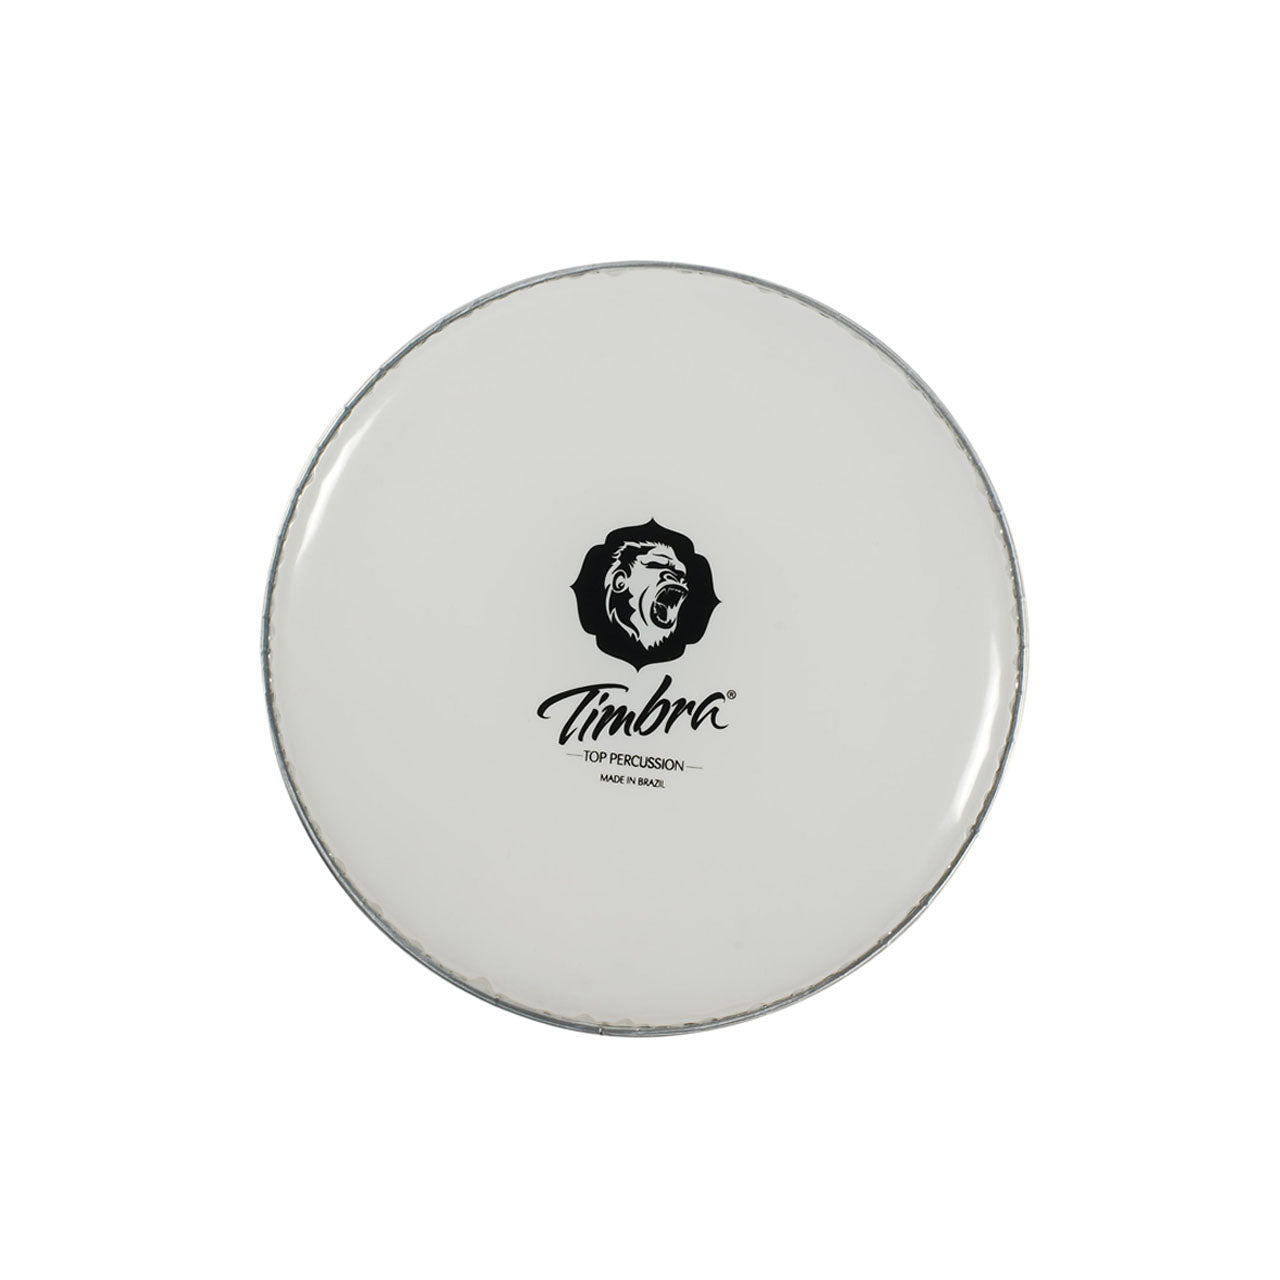 Timbra Top Percussion drum head on a white background. 20 inch diameter milky white drum head with an aluminum rim on a white background.